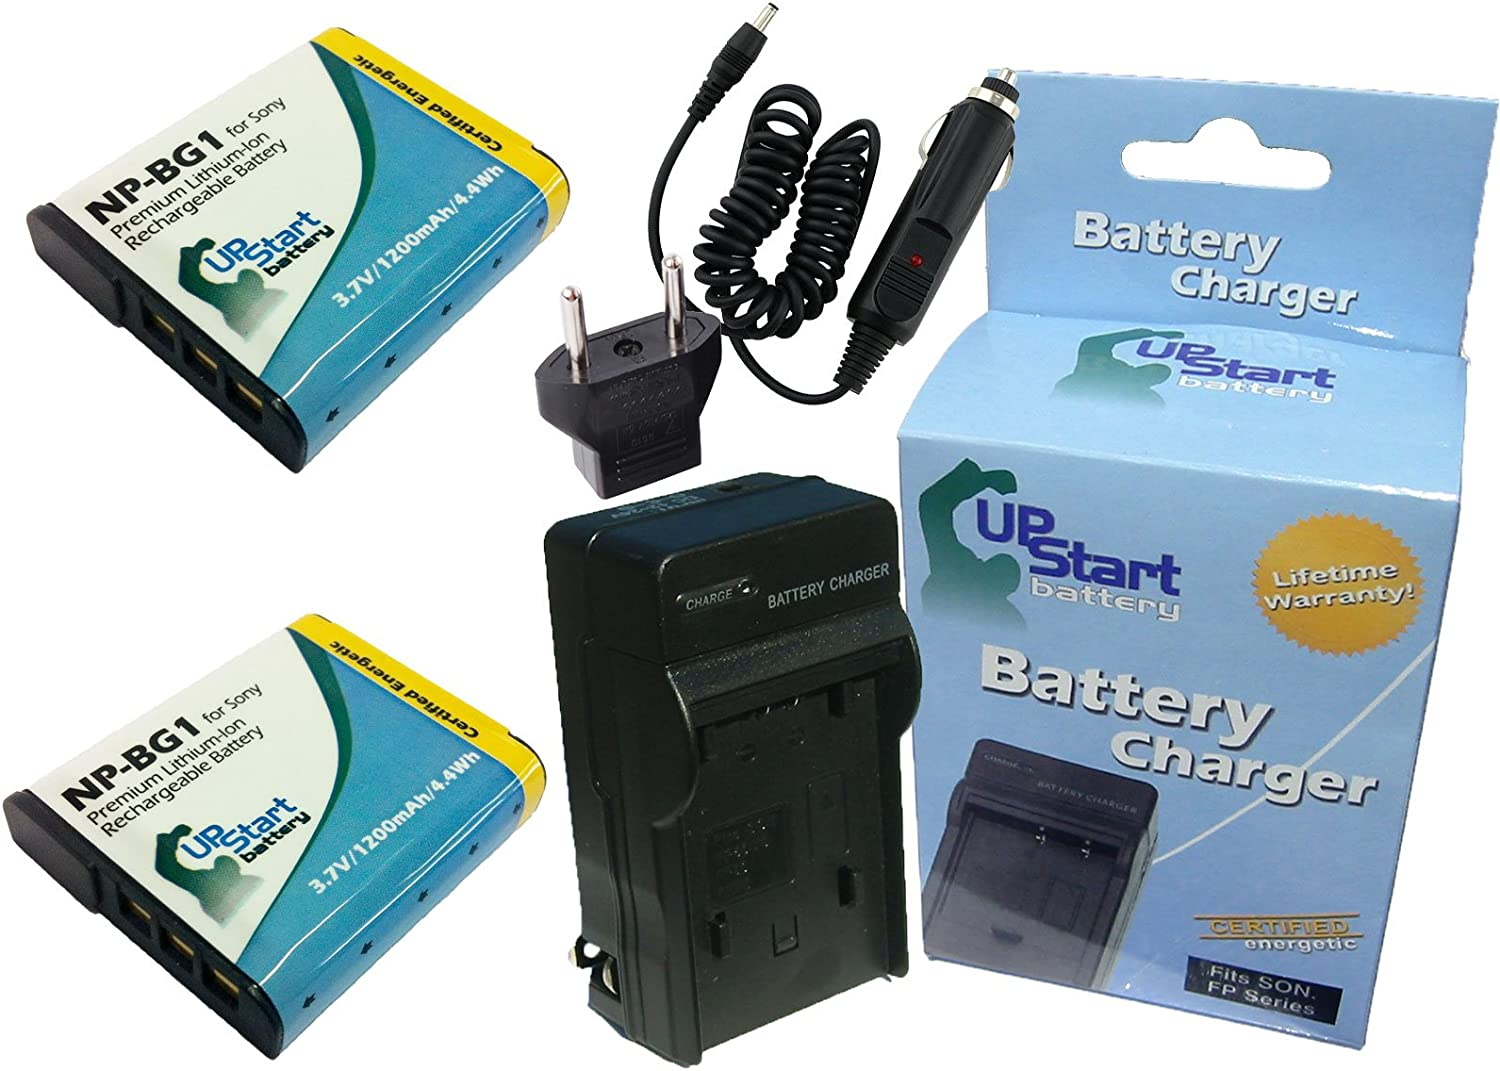 650mAh 3.7V Lithium-Ion Compatible with Sony NP-BN1 Digital Camera Batteries and Chargers Replacement for Sony Cybershot DSC-W610 Battery and Charger with Car Plug and EU Adapter